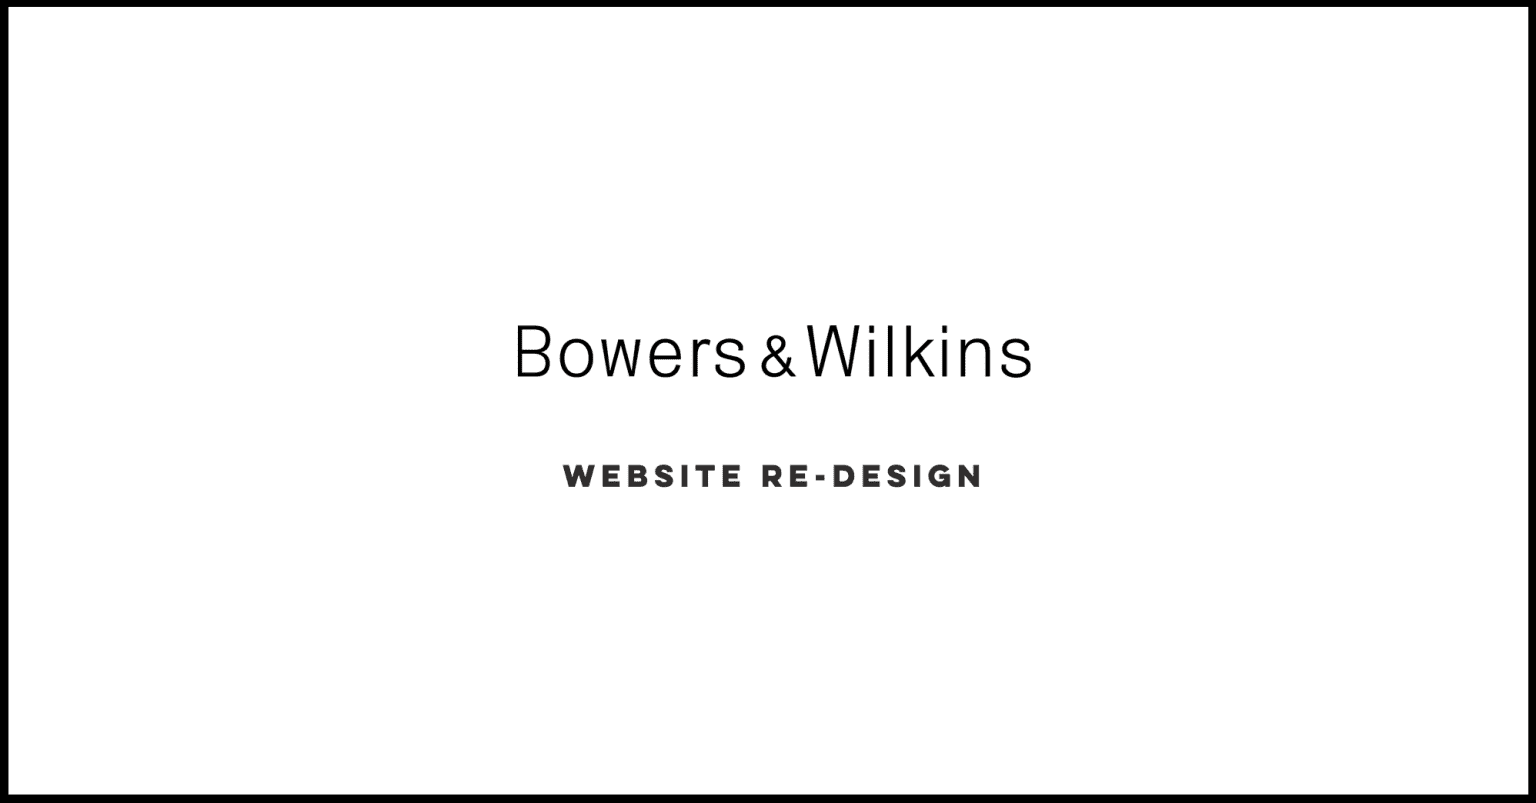 Bowers & Wilkins Re-Design